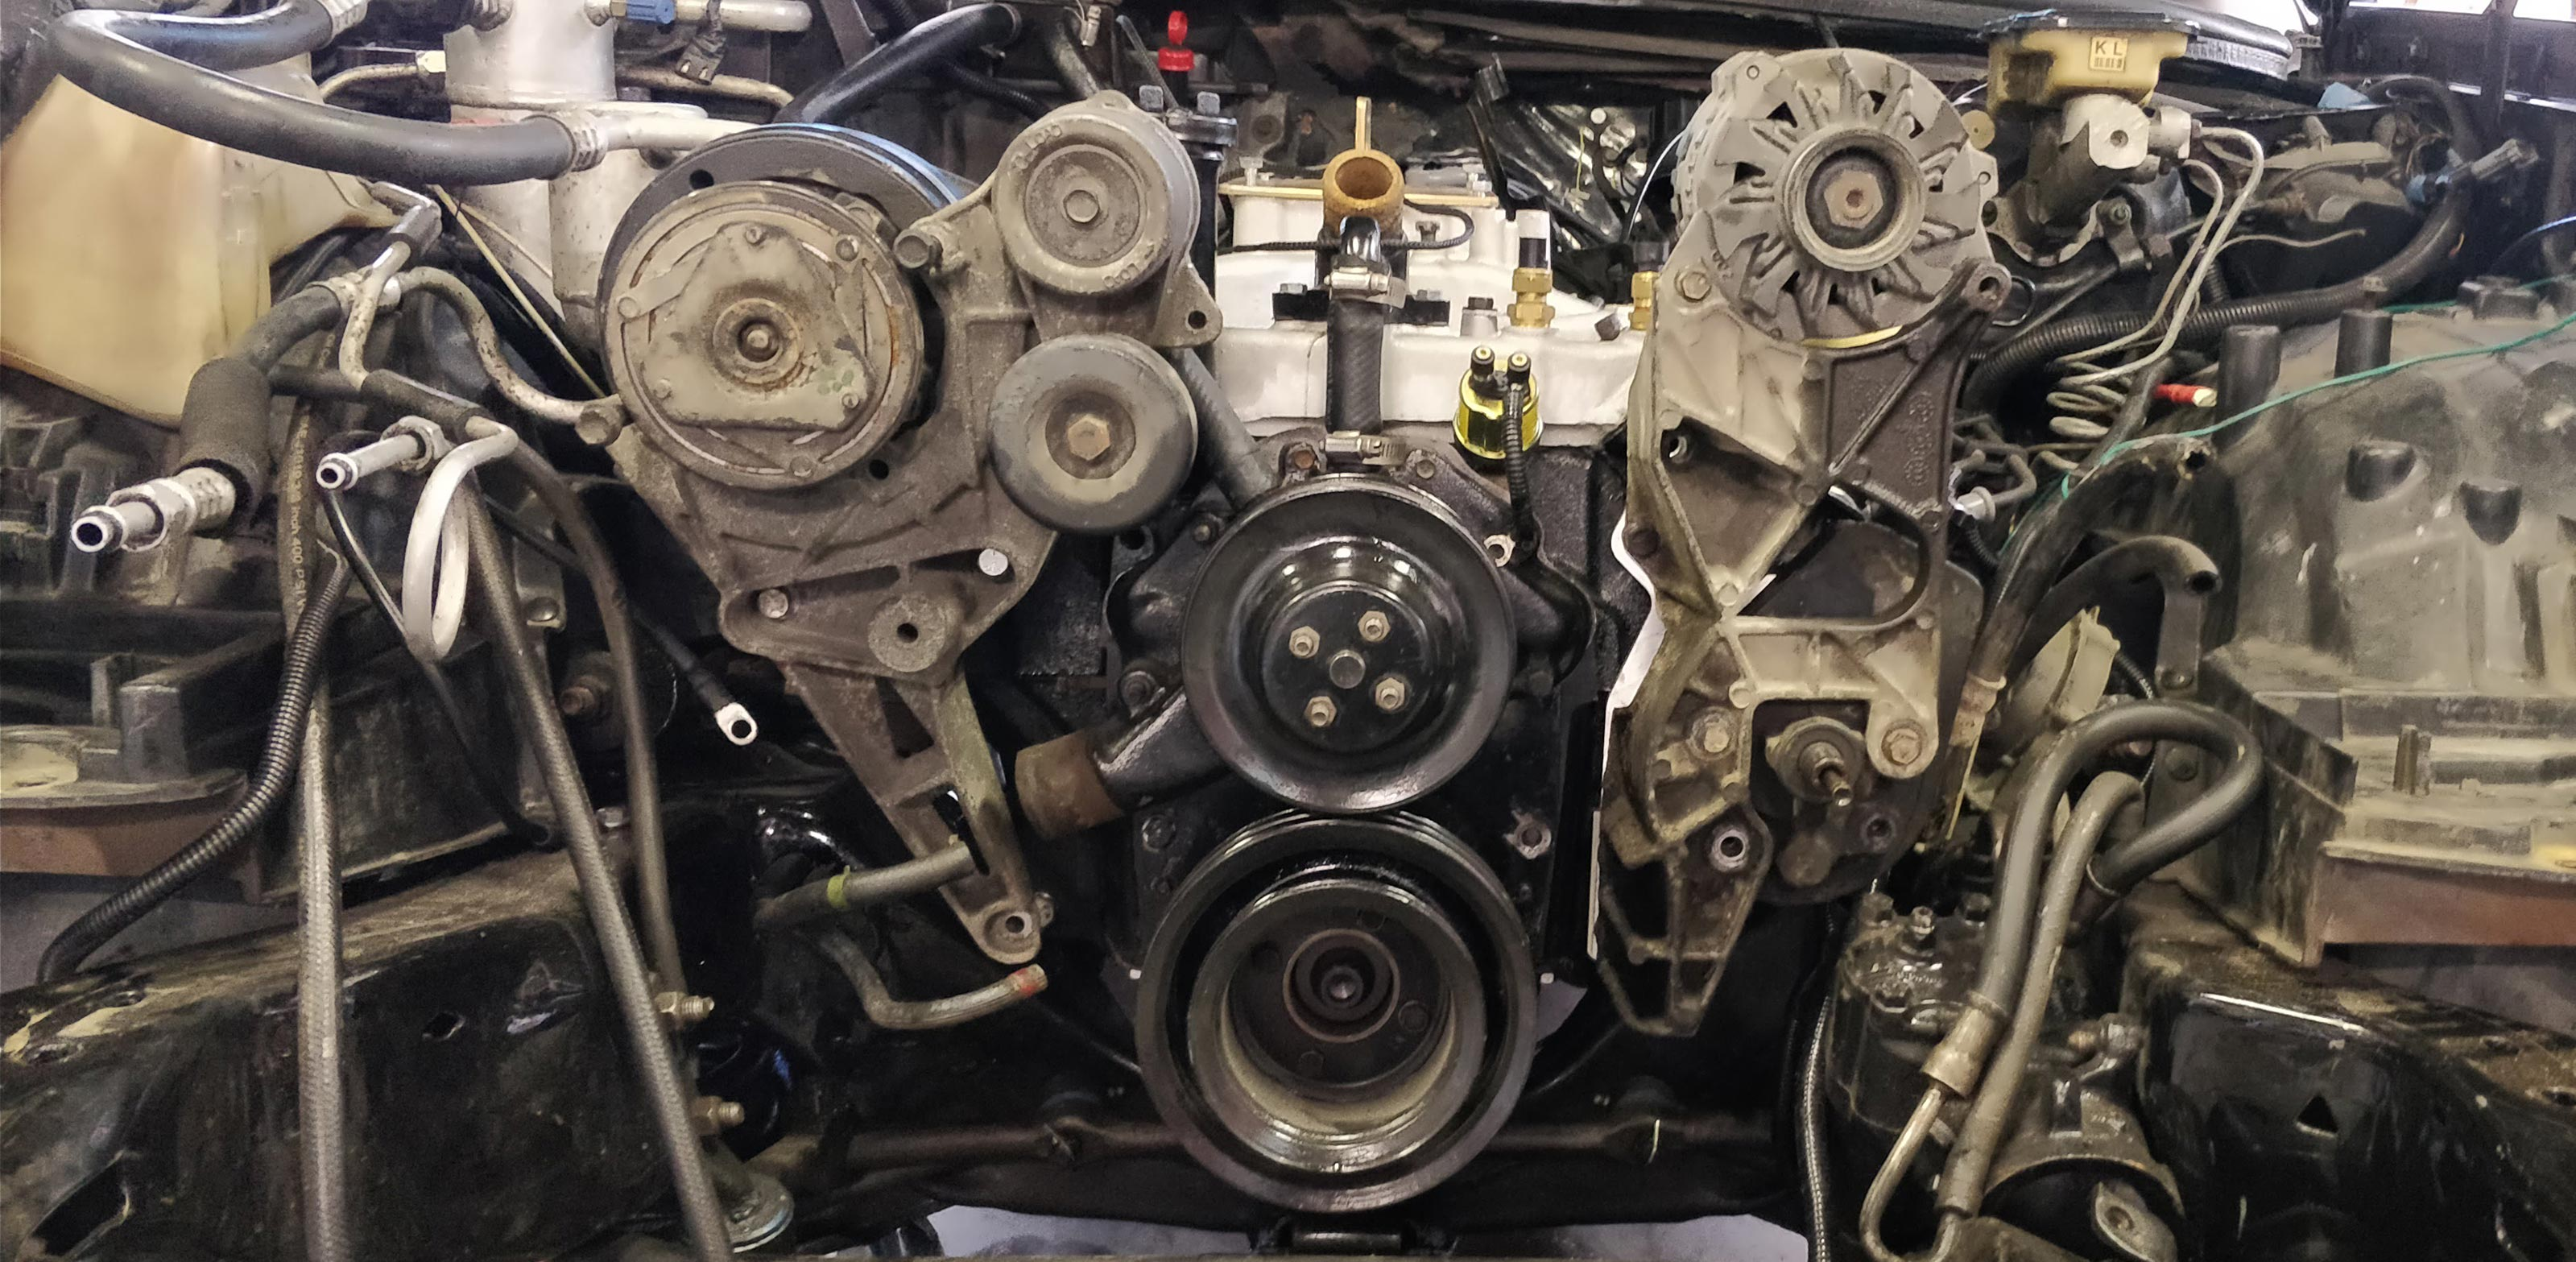 Converting Your Oldsmobile 455425403350307 To A Later Model GM. Serpentine Adapter Kit For Oldsmobile Engines. Wiring. 455 Olds Engine Belt Diagram At Scoala.co